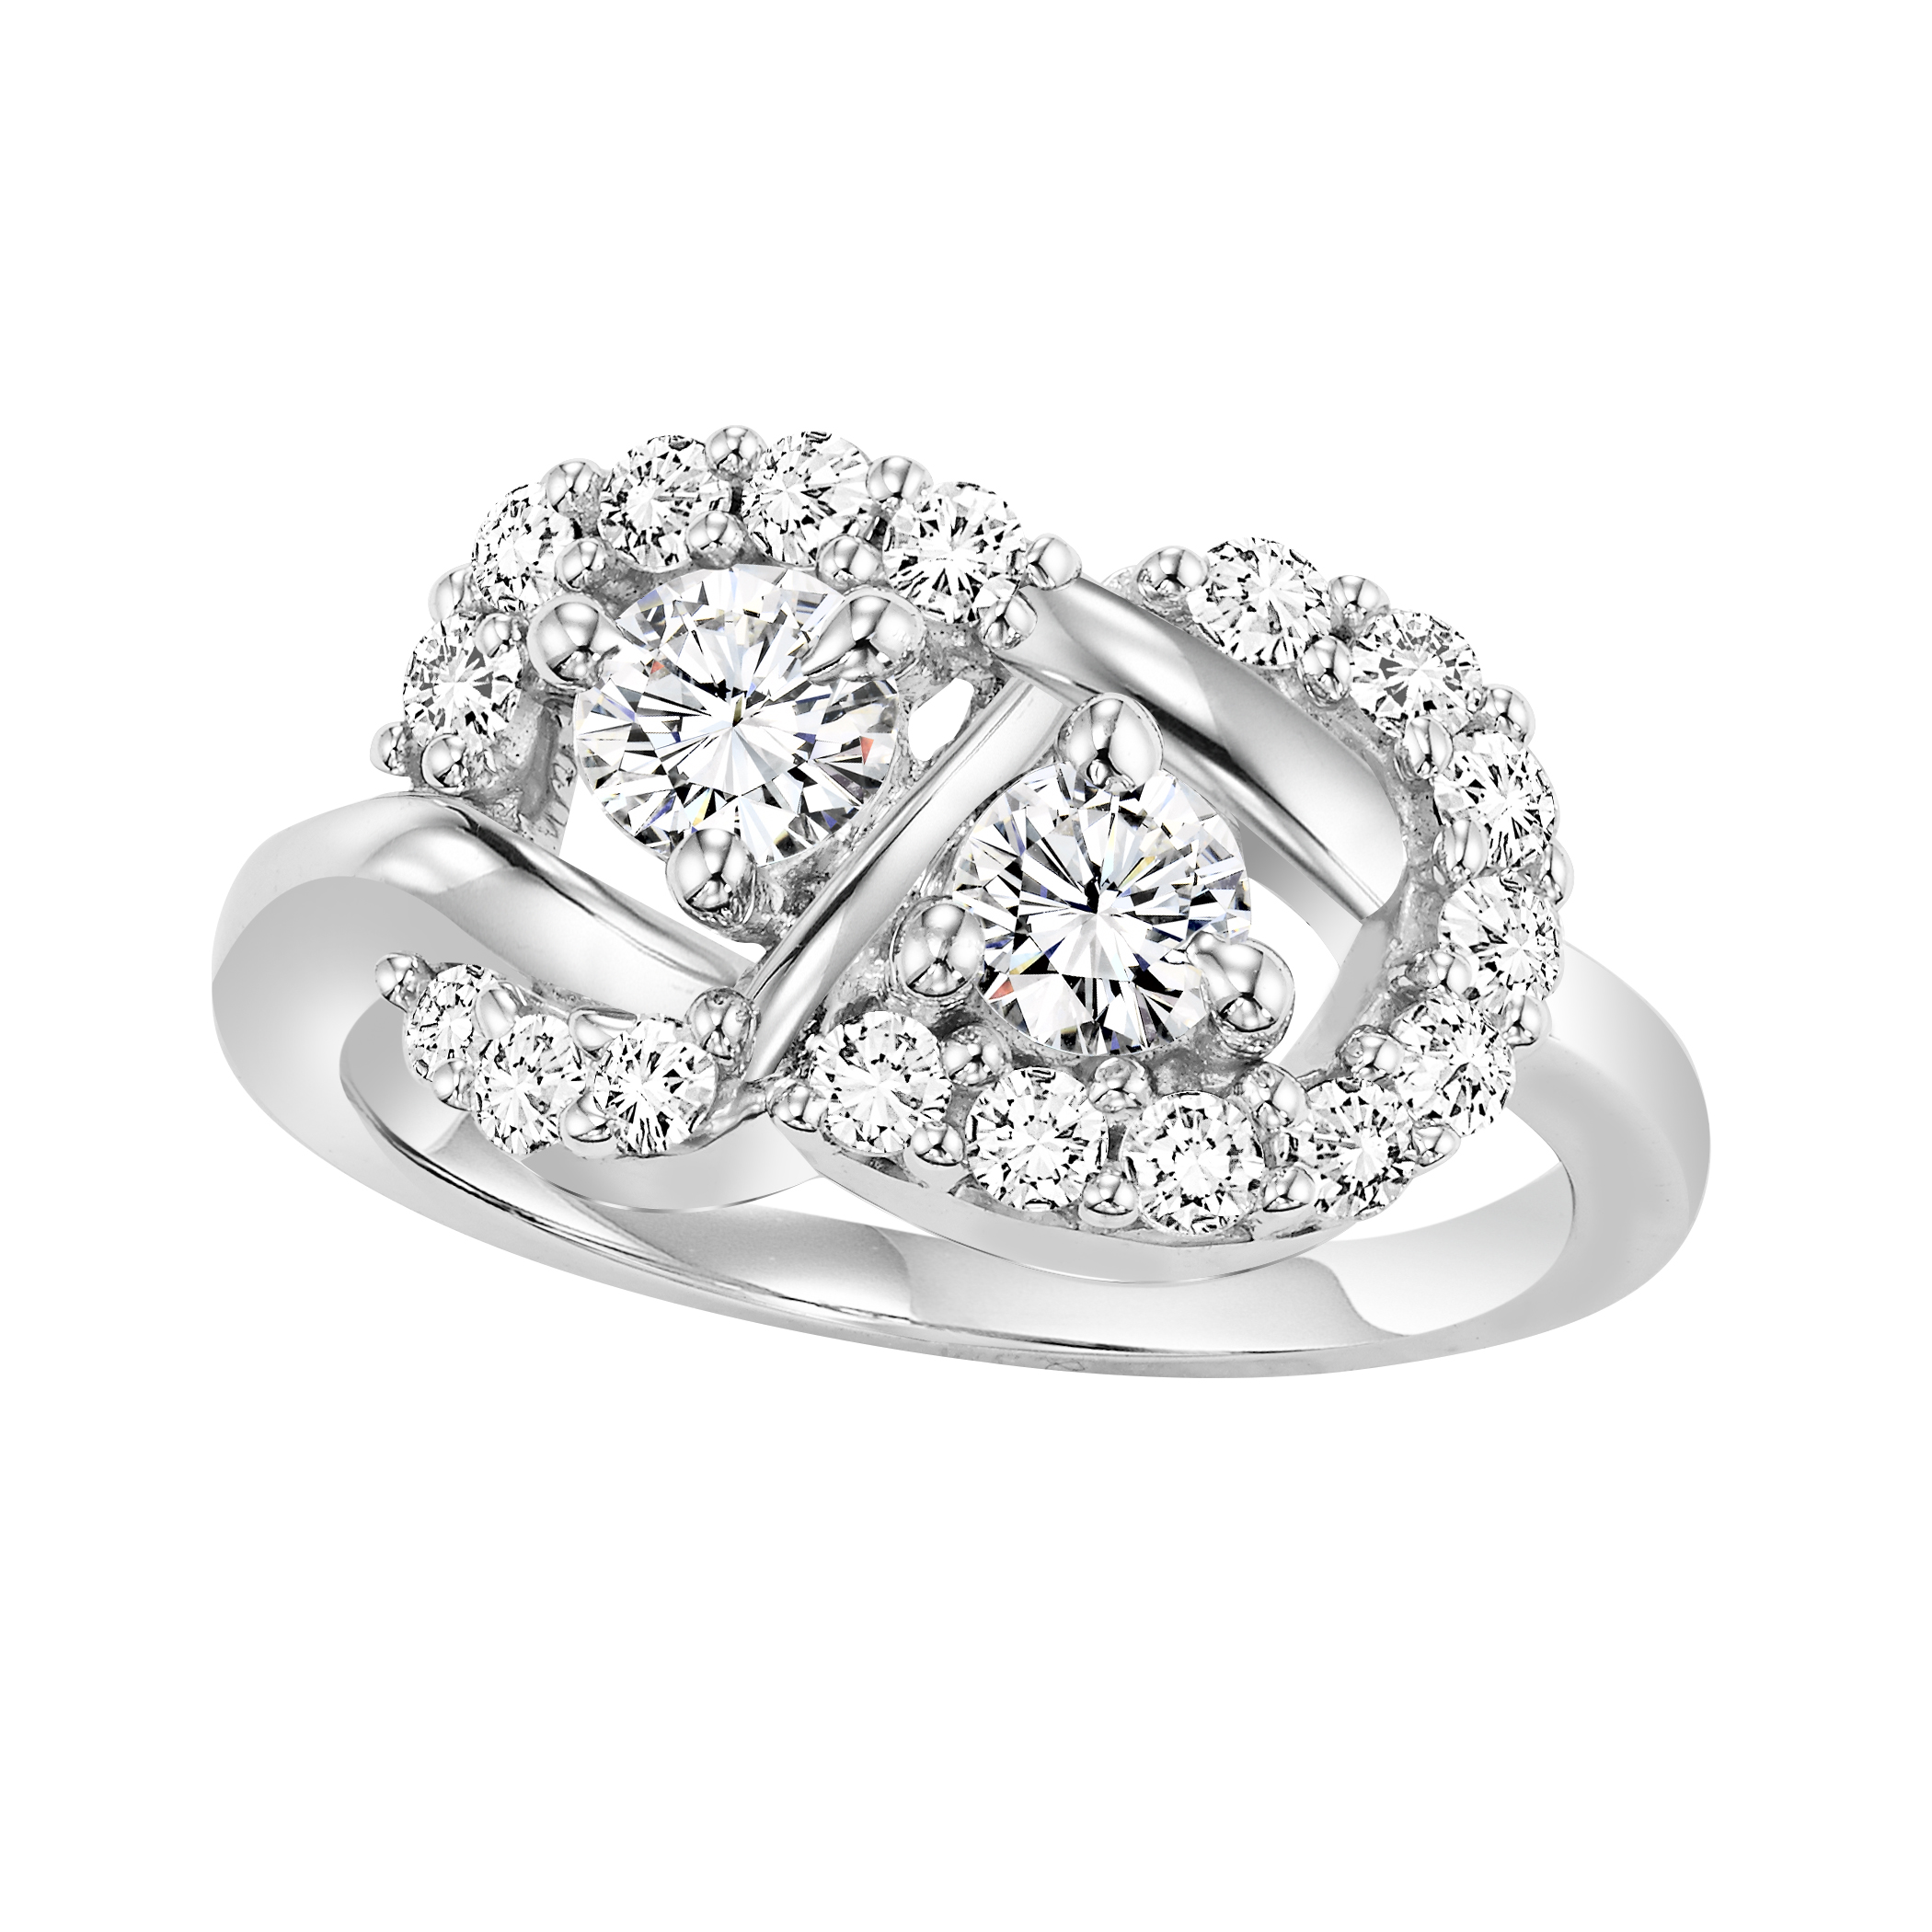 stone cttw together rings jewelers ring hearts round waldin engagement bridal gold diamond white